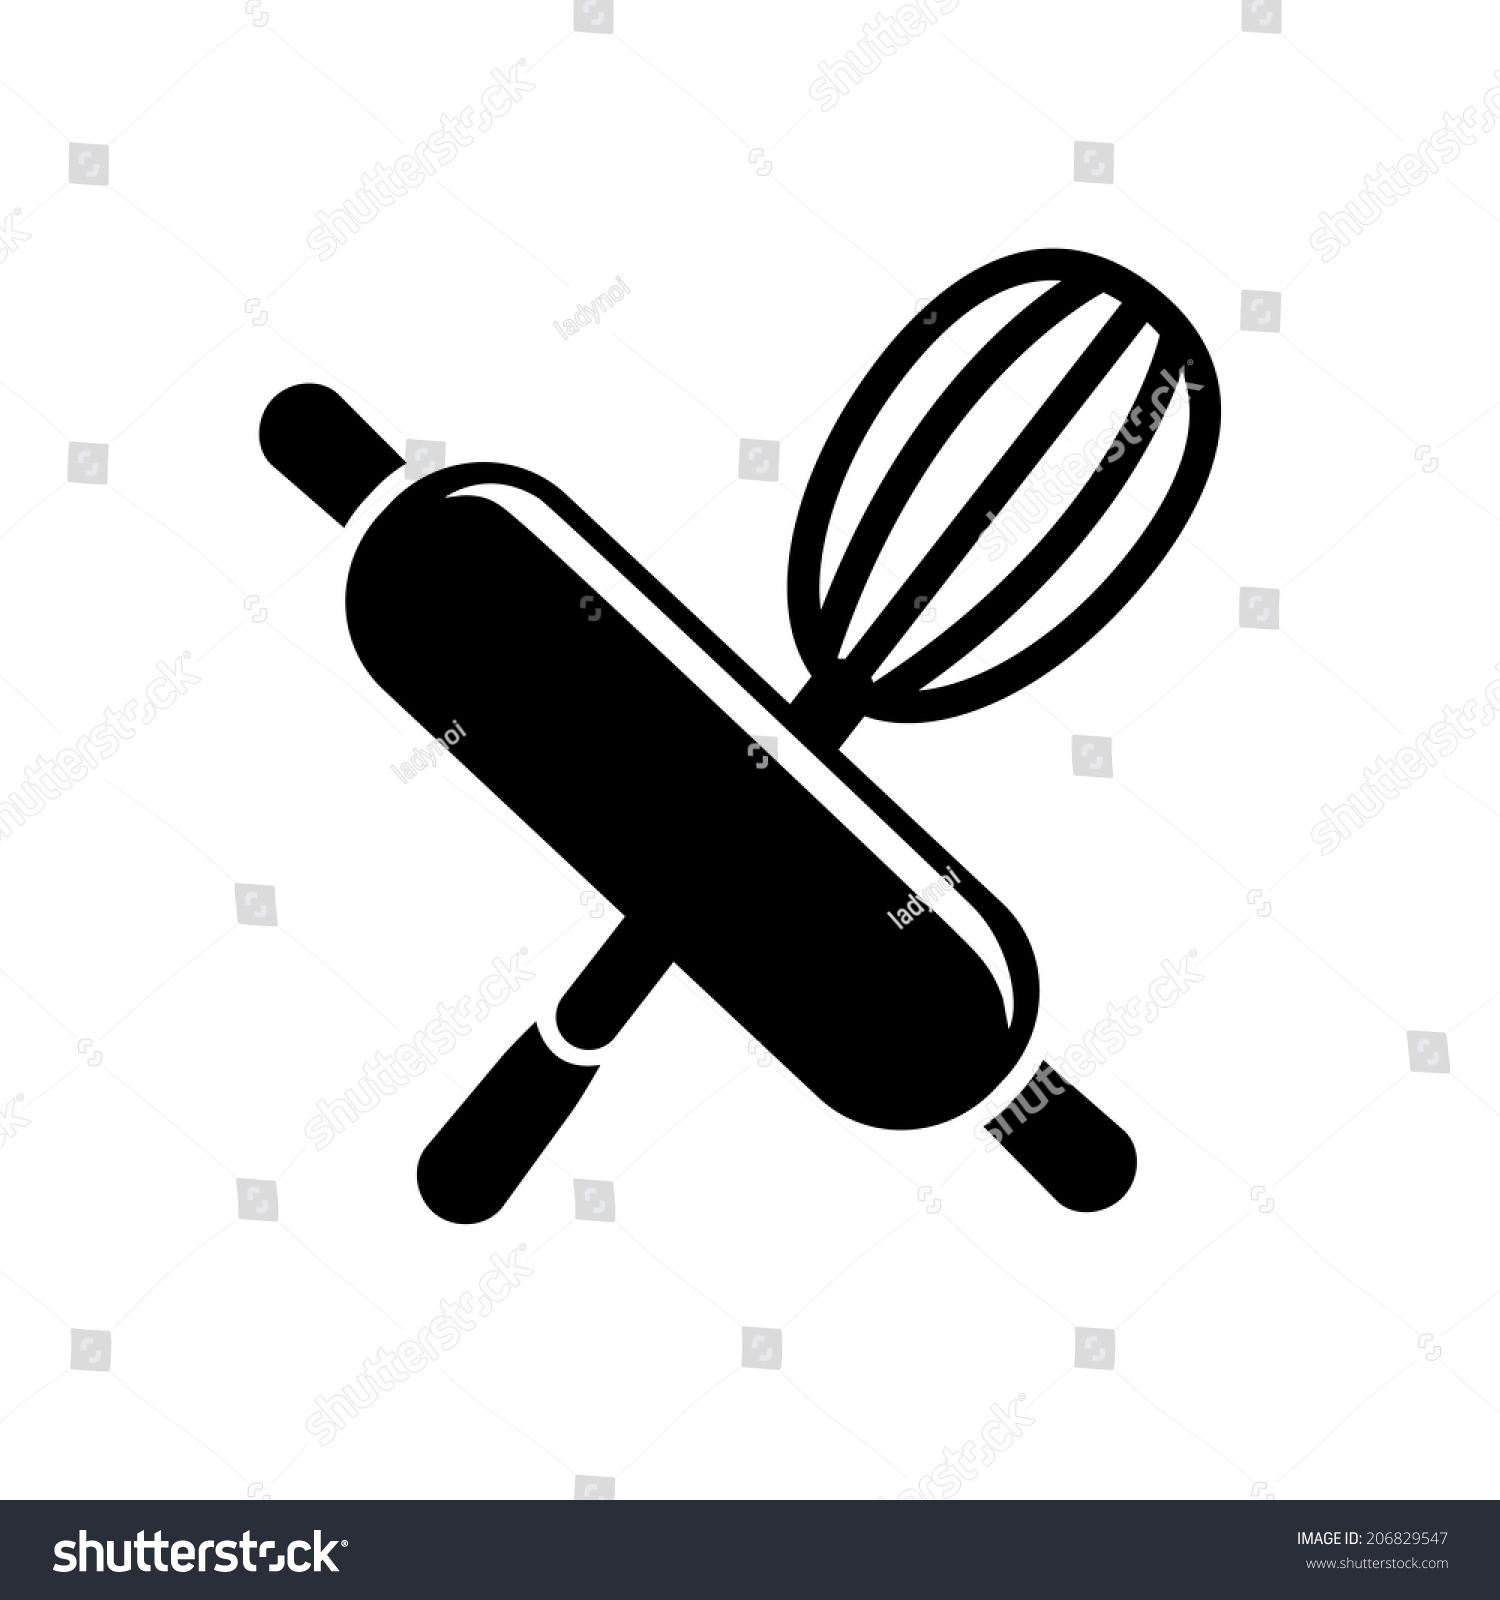 Royalty-free Rolling pin with whisk icon #206829547 Stock Photo ...